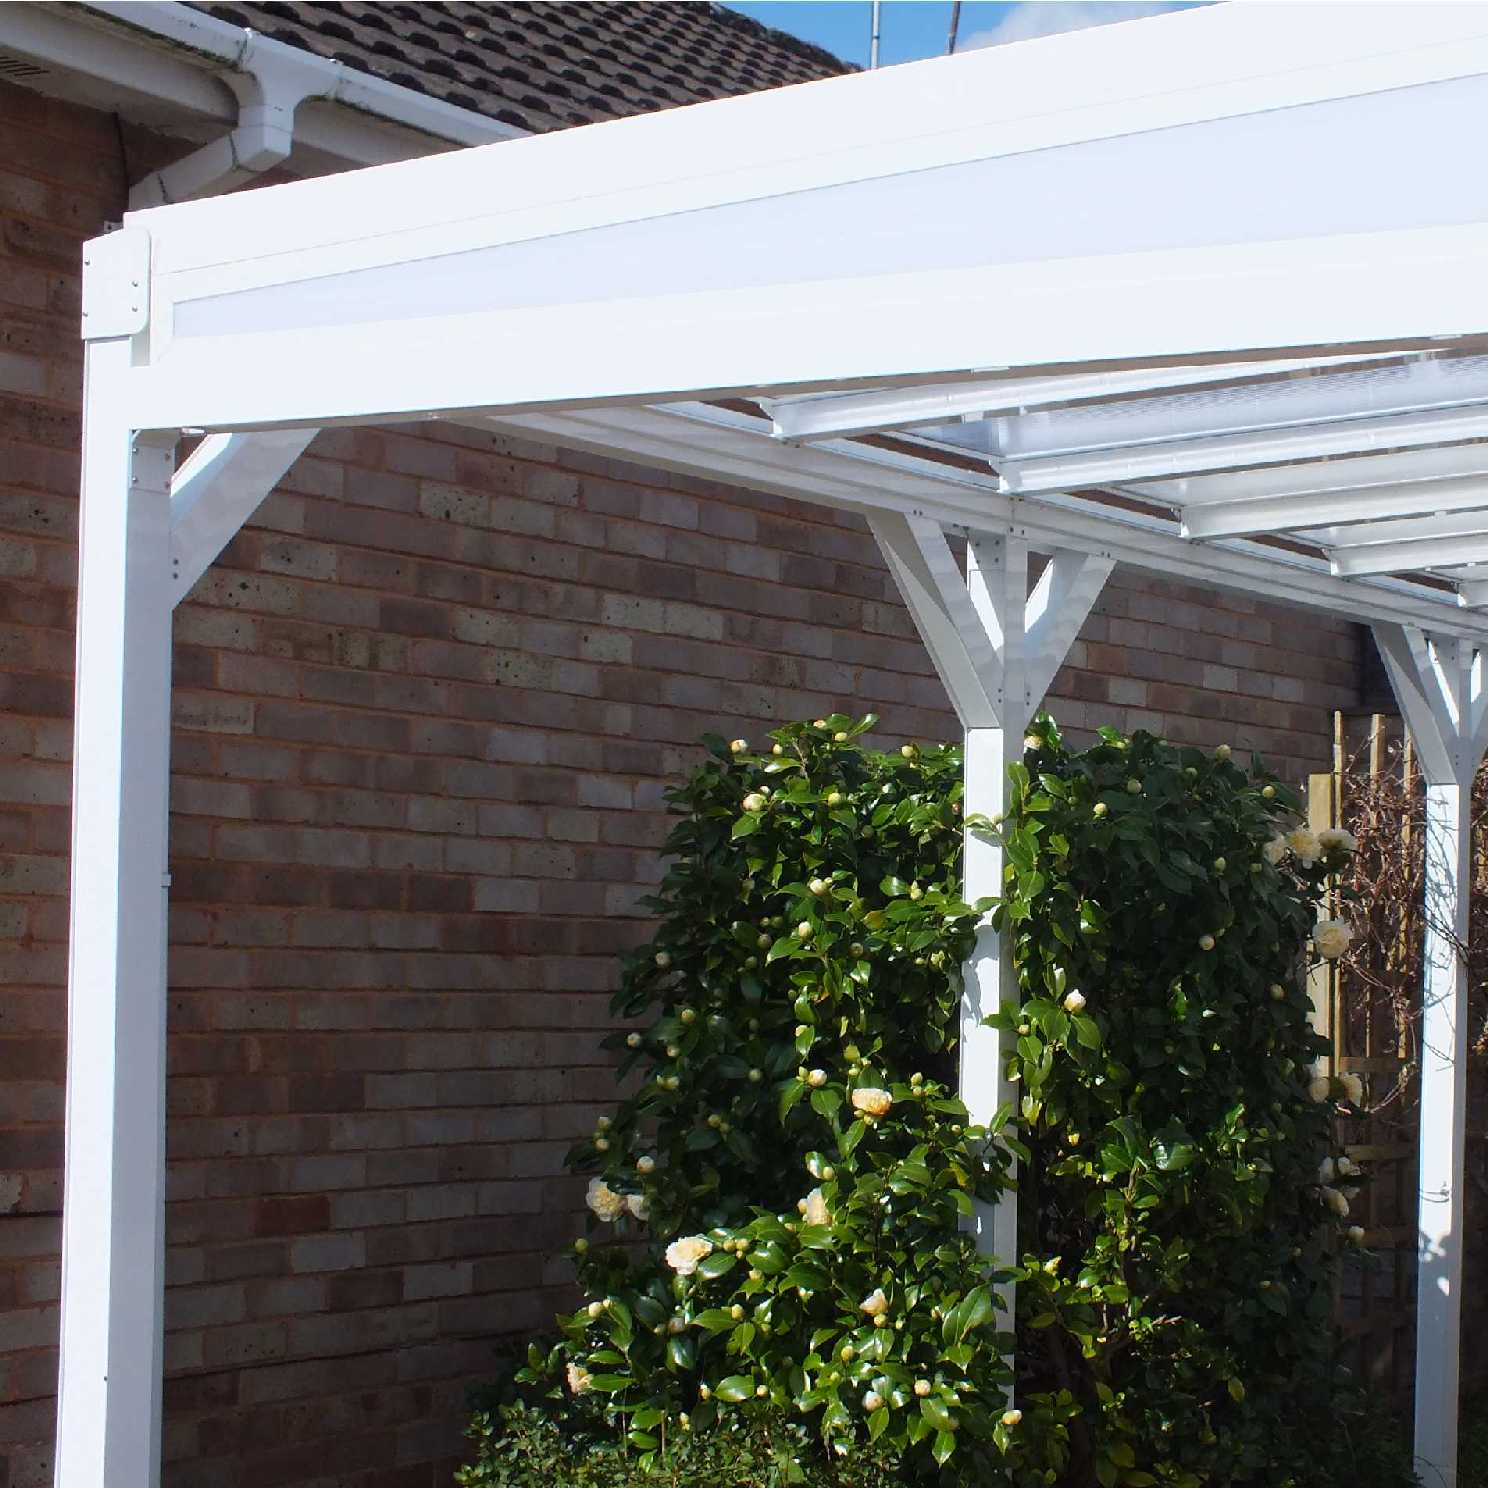 Omega Smart Lean-To Canopy with 16mm Polycarbonate Glazing - 2.1m (W) x 1.5m (P), (2) Supporting Posts from Omega Build